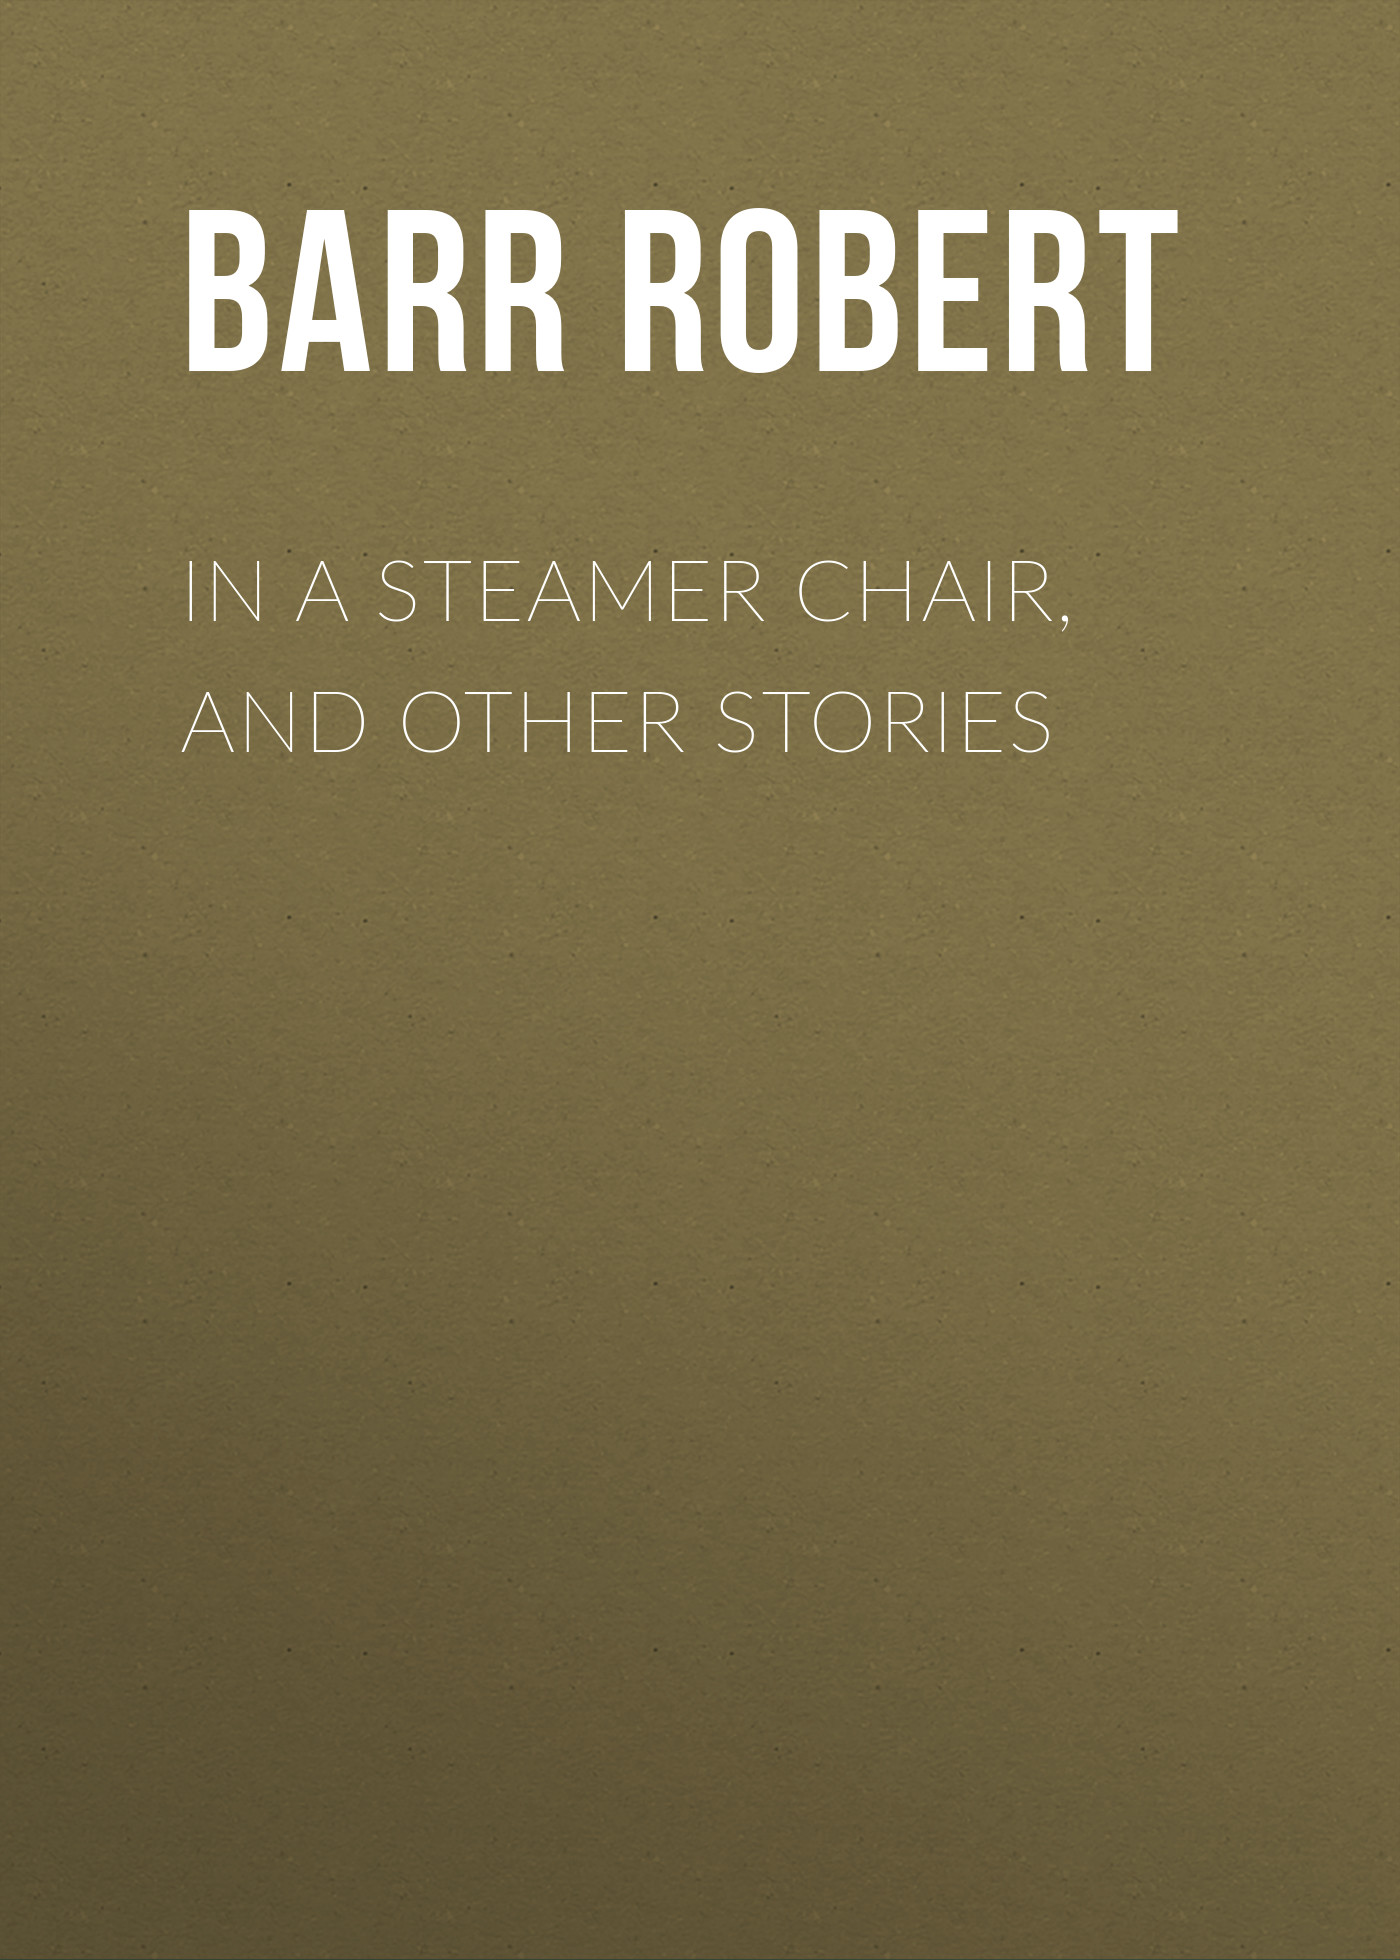 Barr Robert In a Steamer Chair, and Other Stories